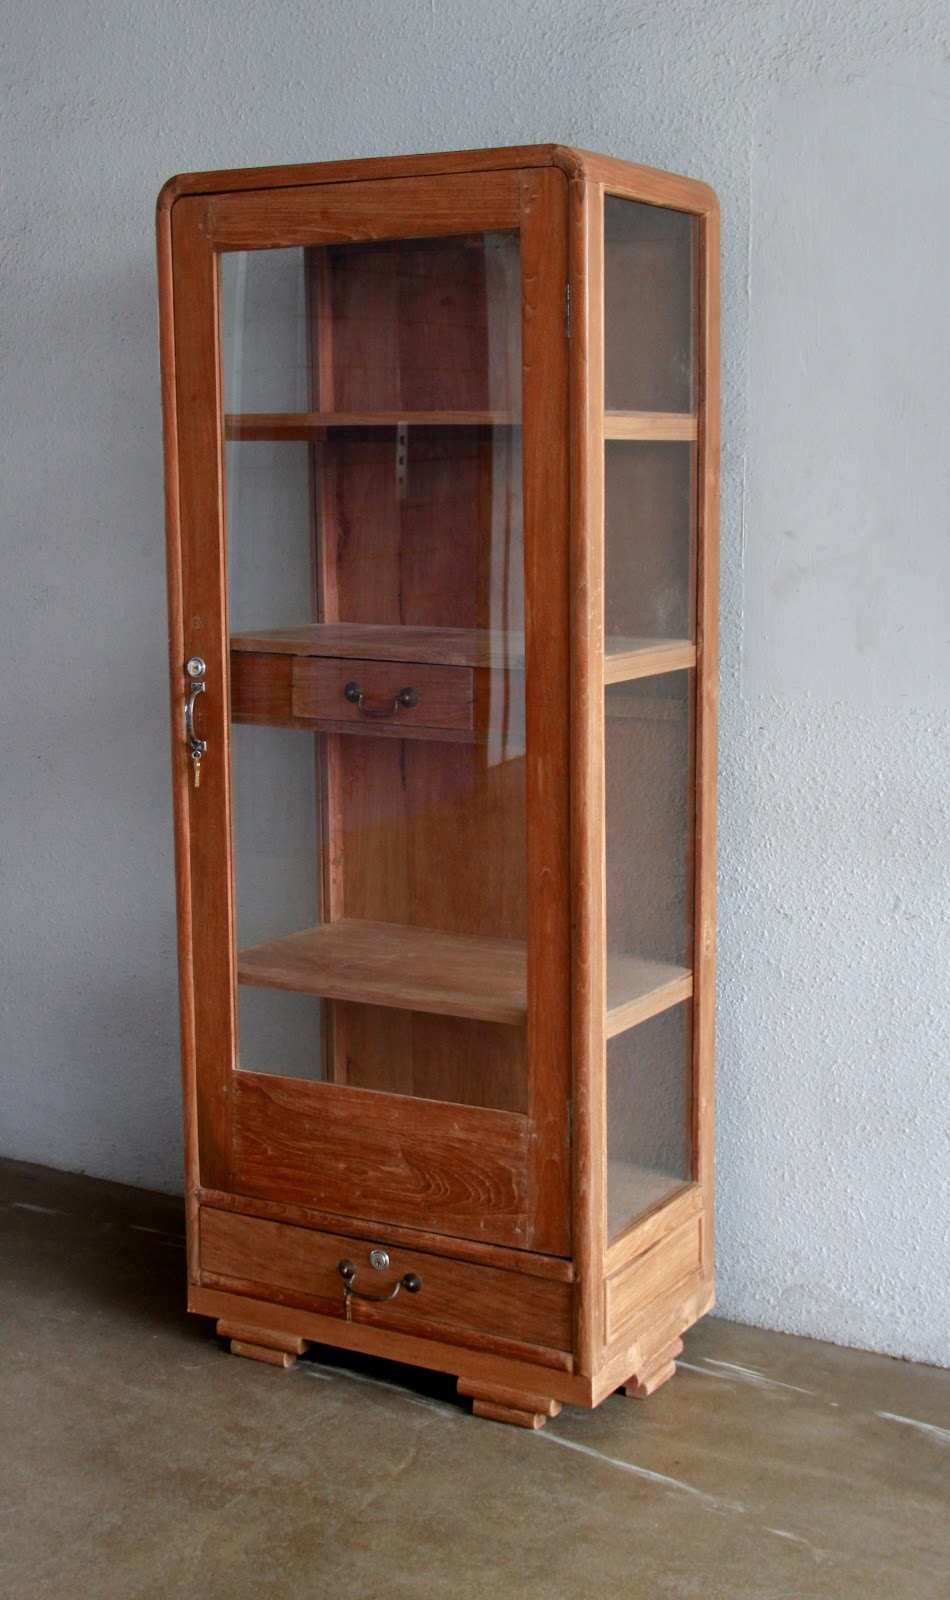 Vintage Showcases And Display Cabinets Ashley Furniture